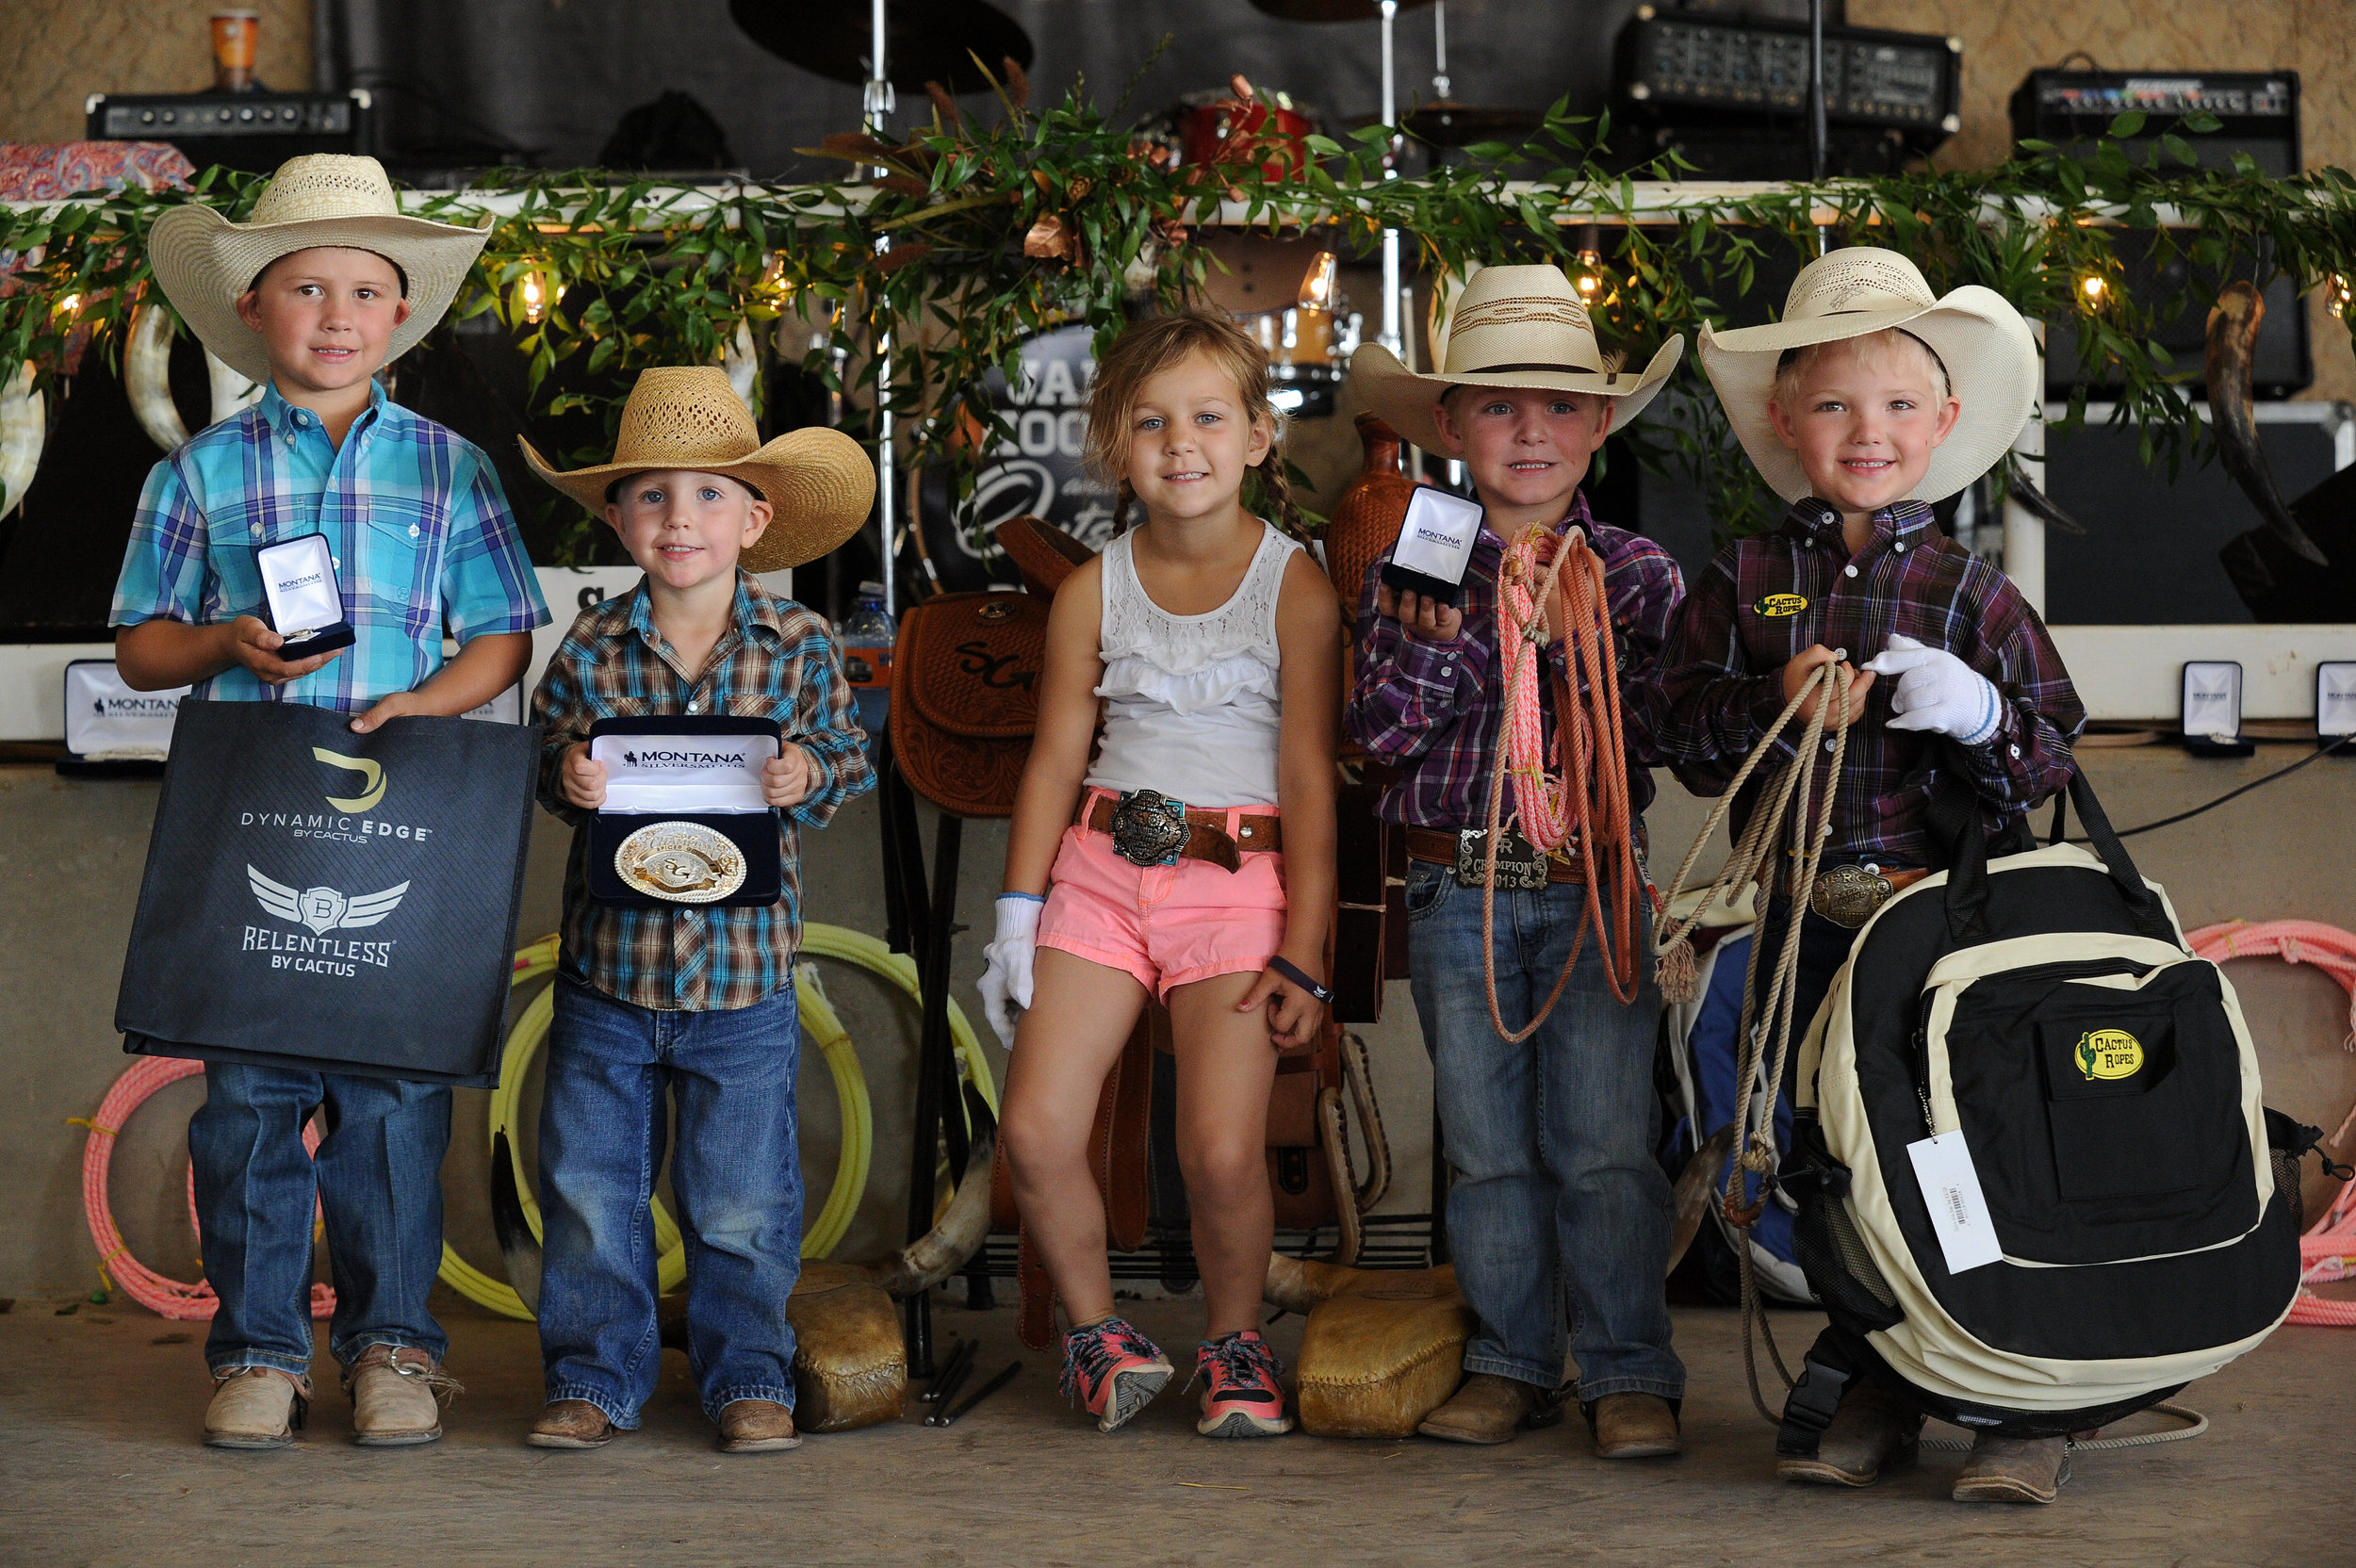 2017 SG Dummy Roping Award Youngest Age Group.jpg